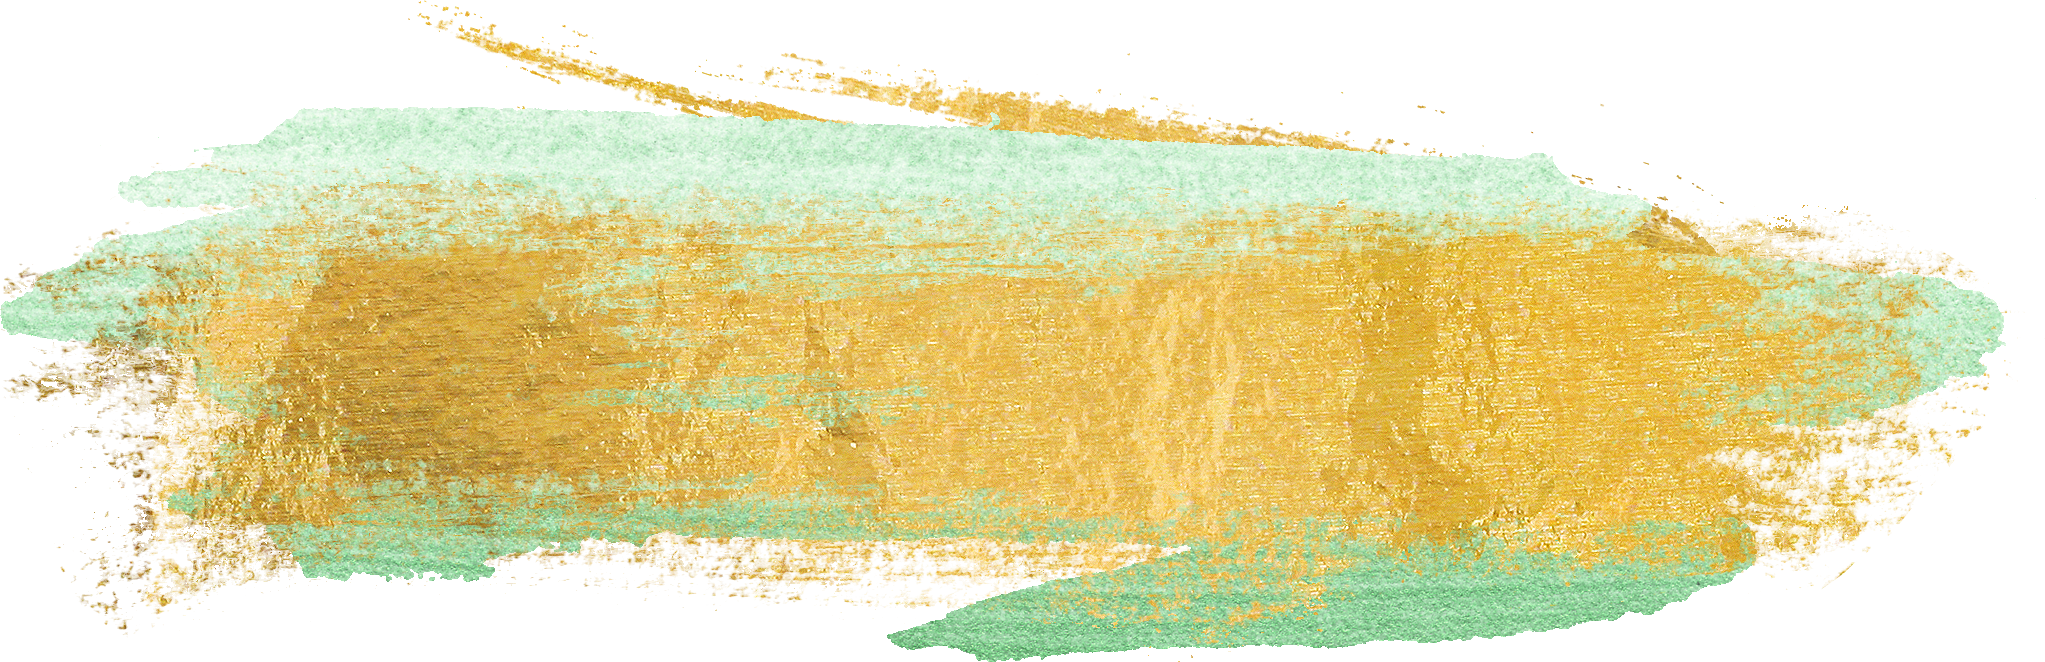 Paint strokes png. Free gold brush cu